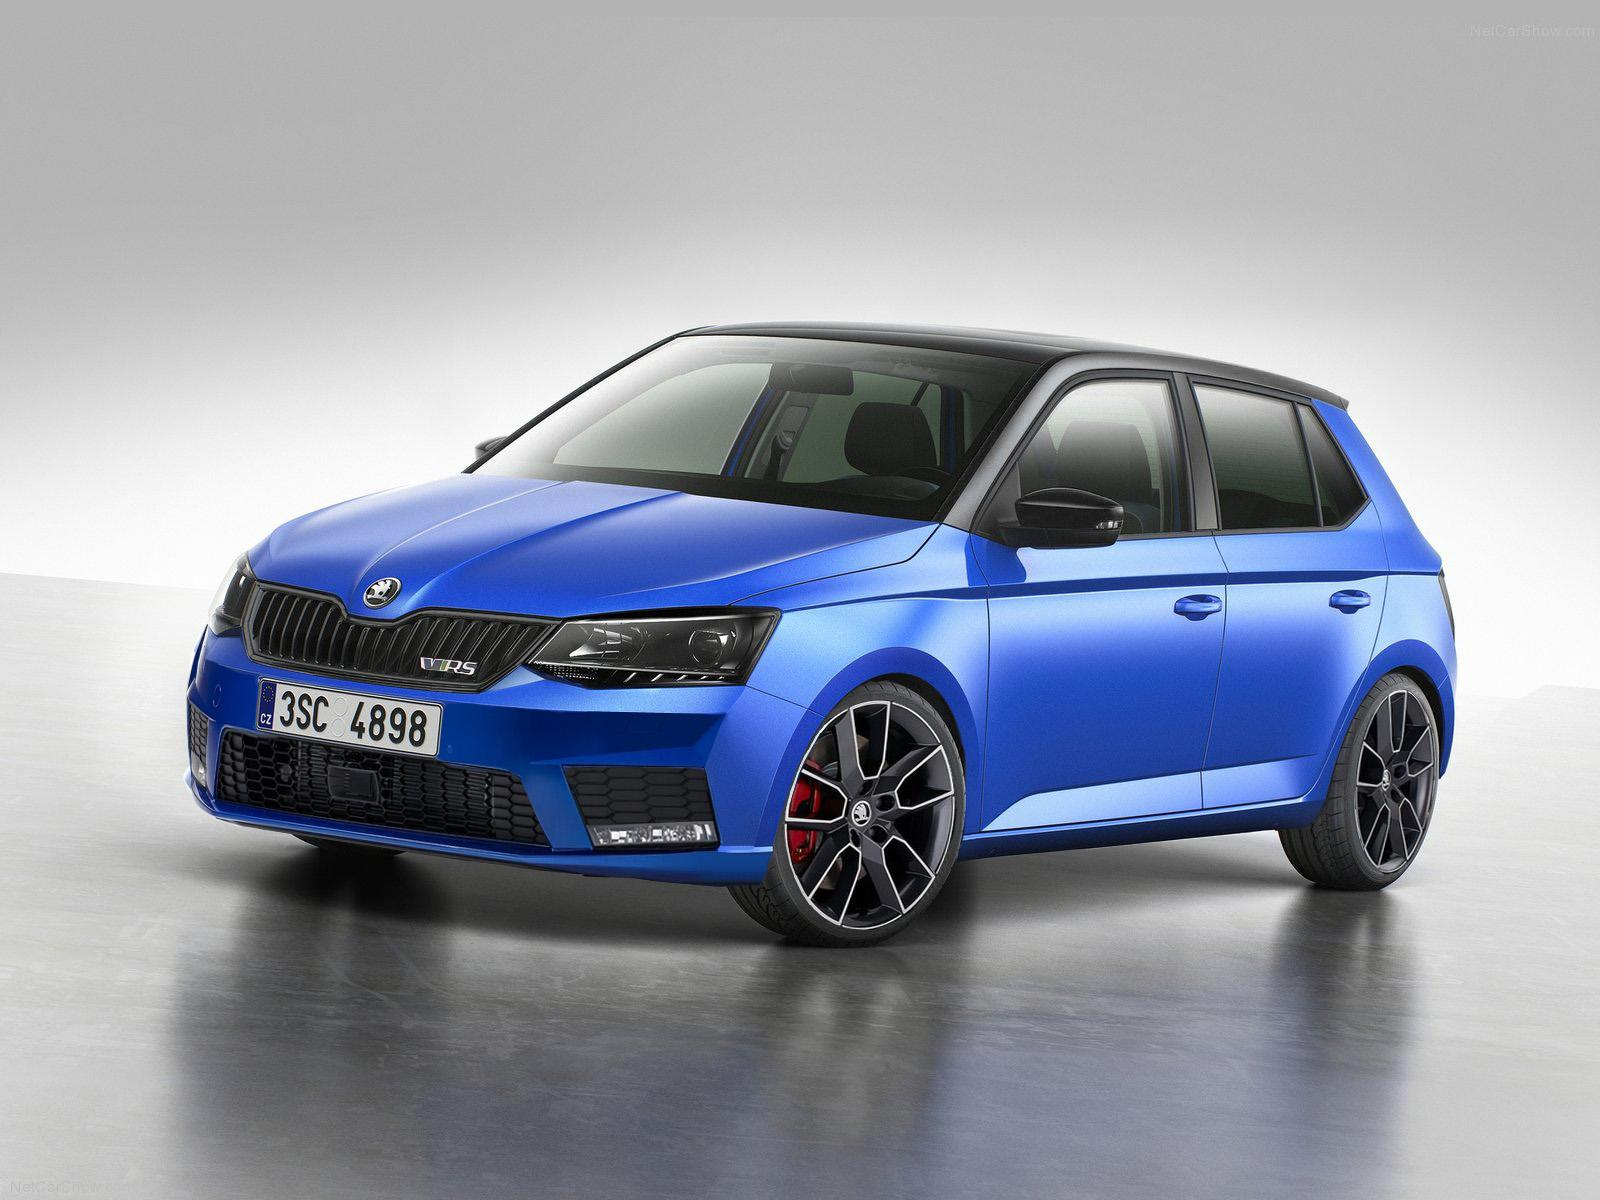 A Comprehensive Review On Skoda Fabia Rs Emotoauto Com